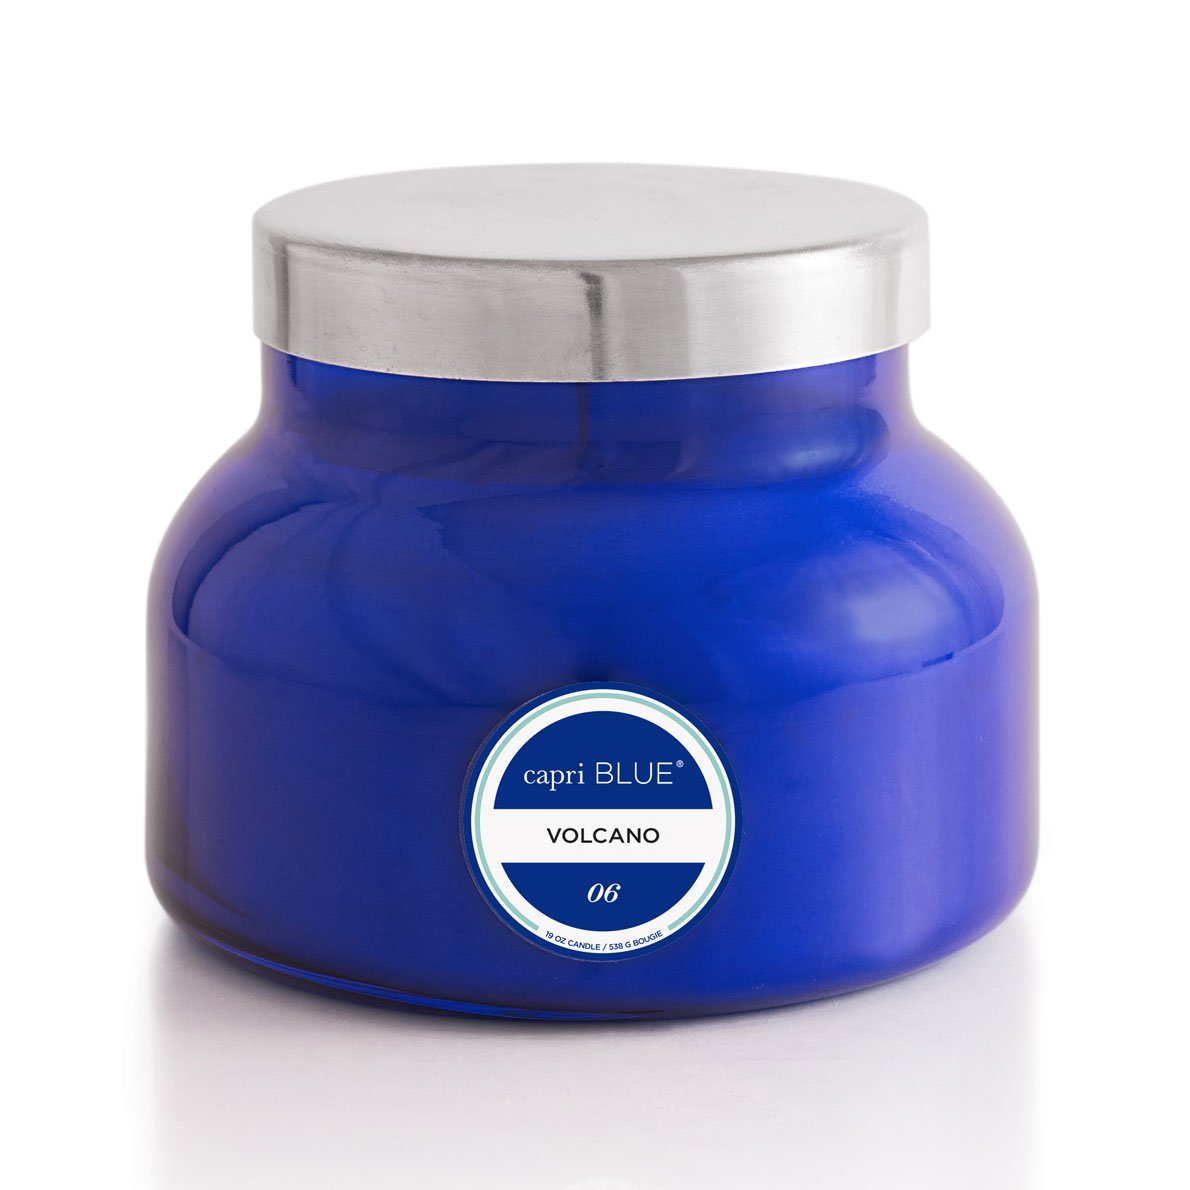 Capri Blue Aspen Bay Jar Volcano Candle, 19 Ounce by Capri Blue